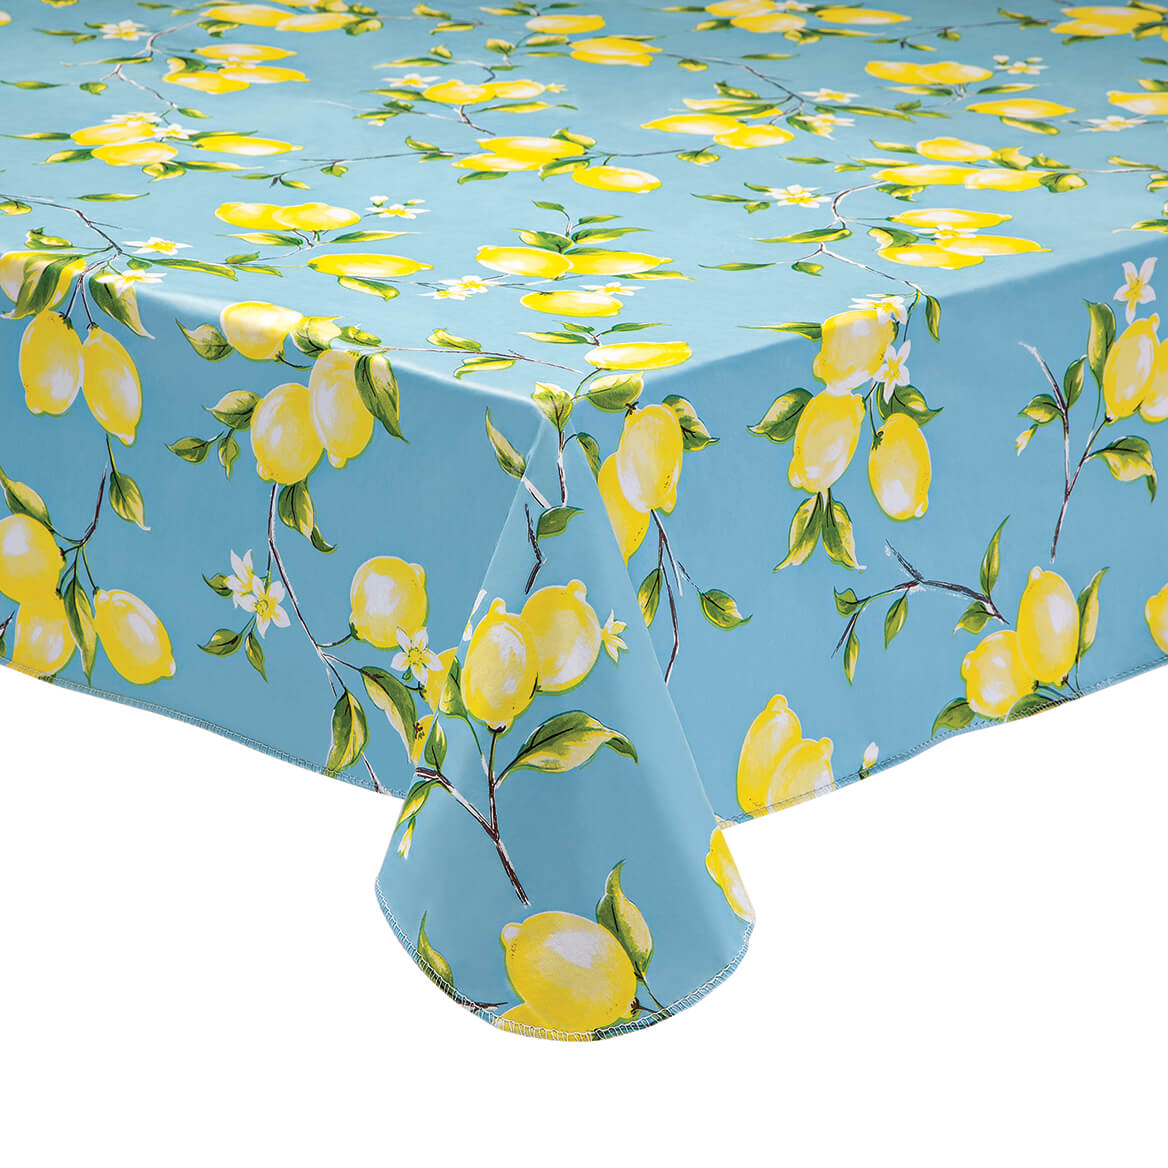 Amscan Disposable Paper Table Cover with Floral Splash Print 54 x 102 Multi 579479